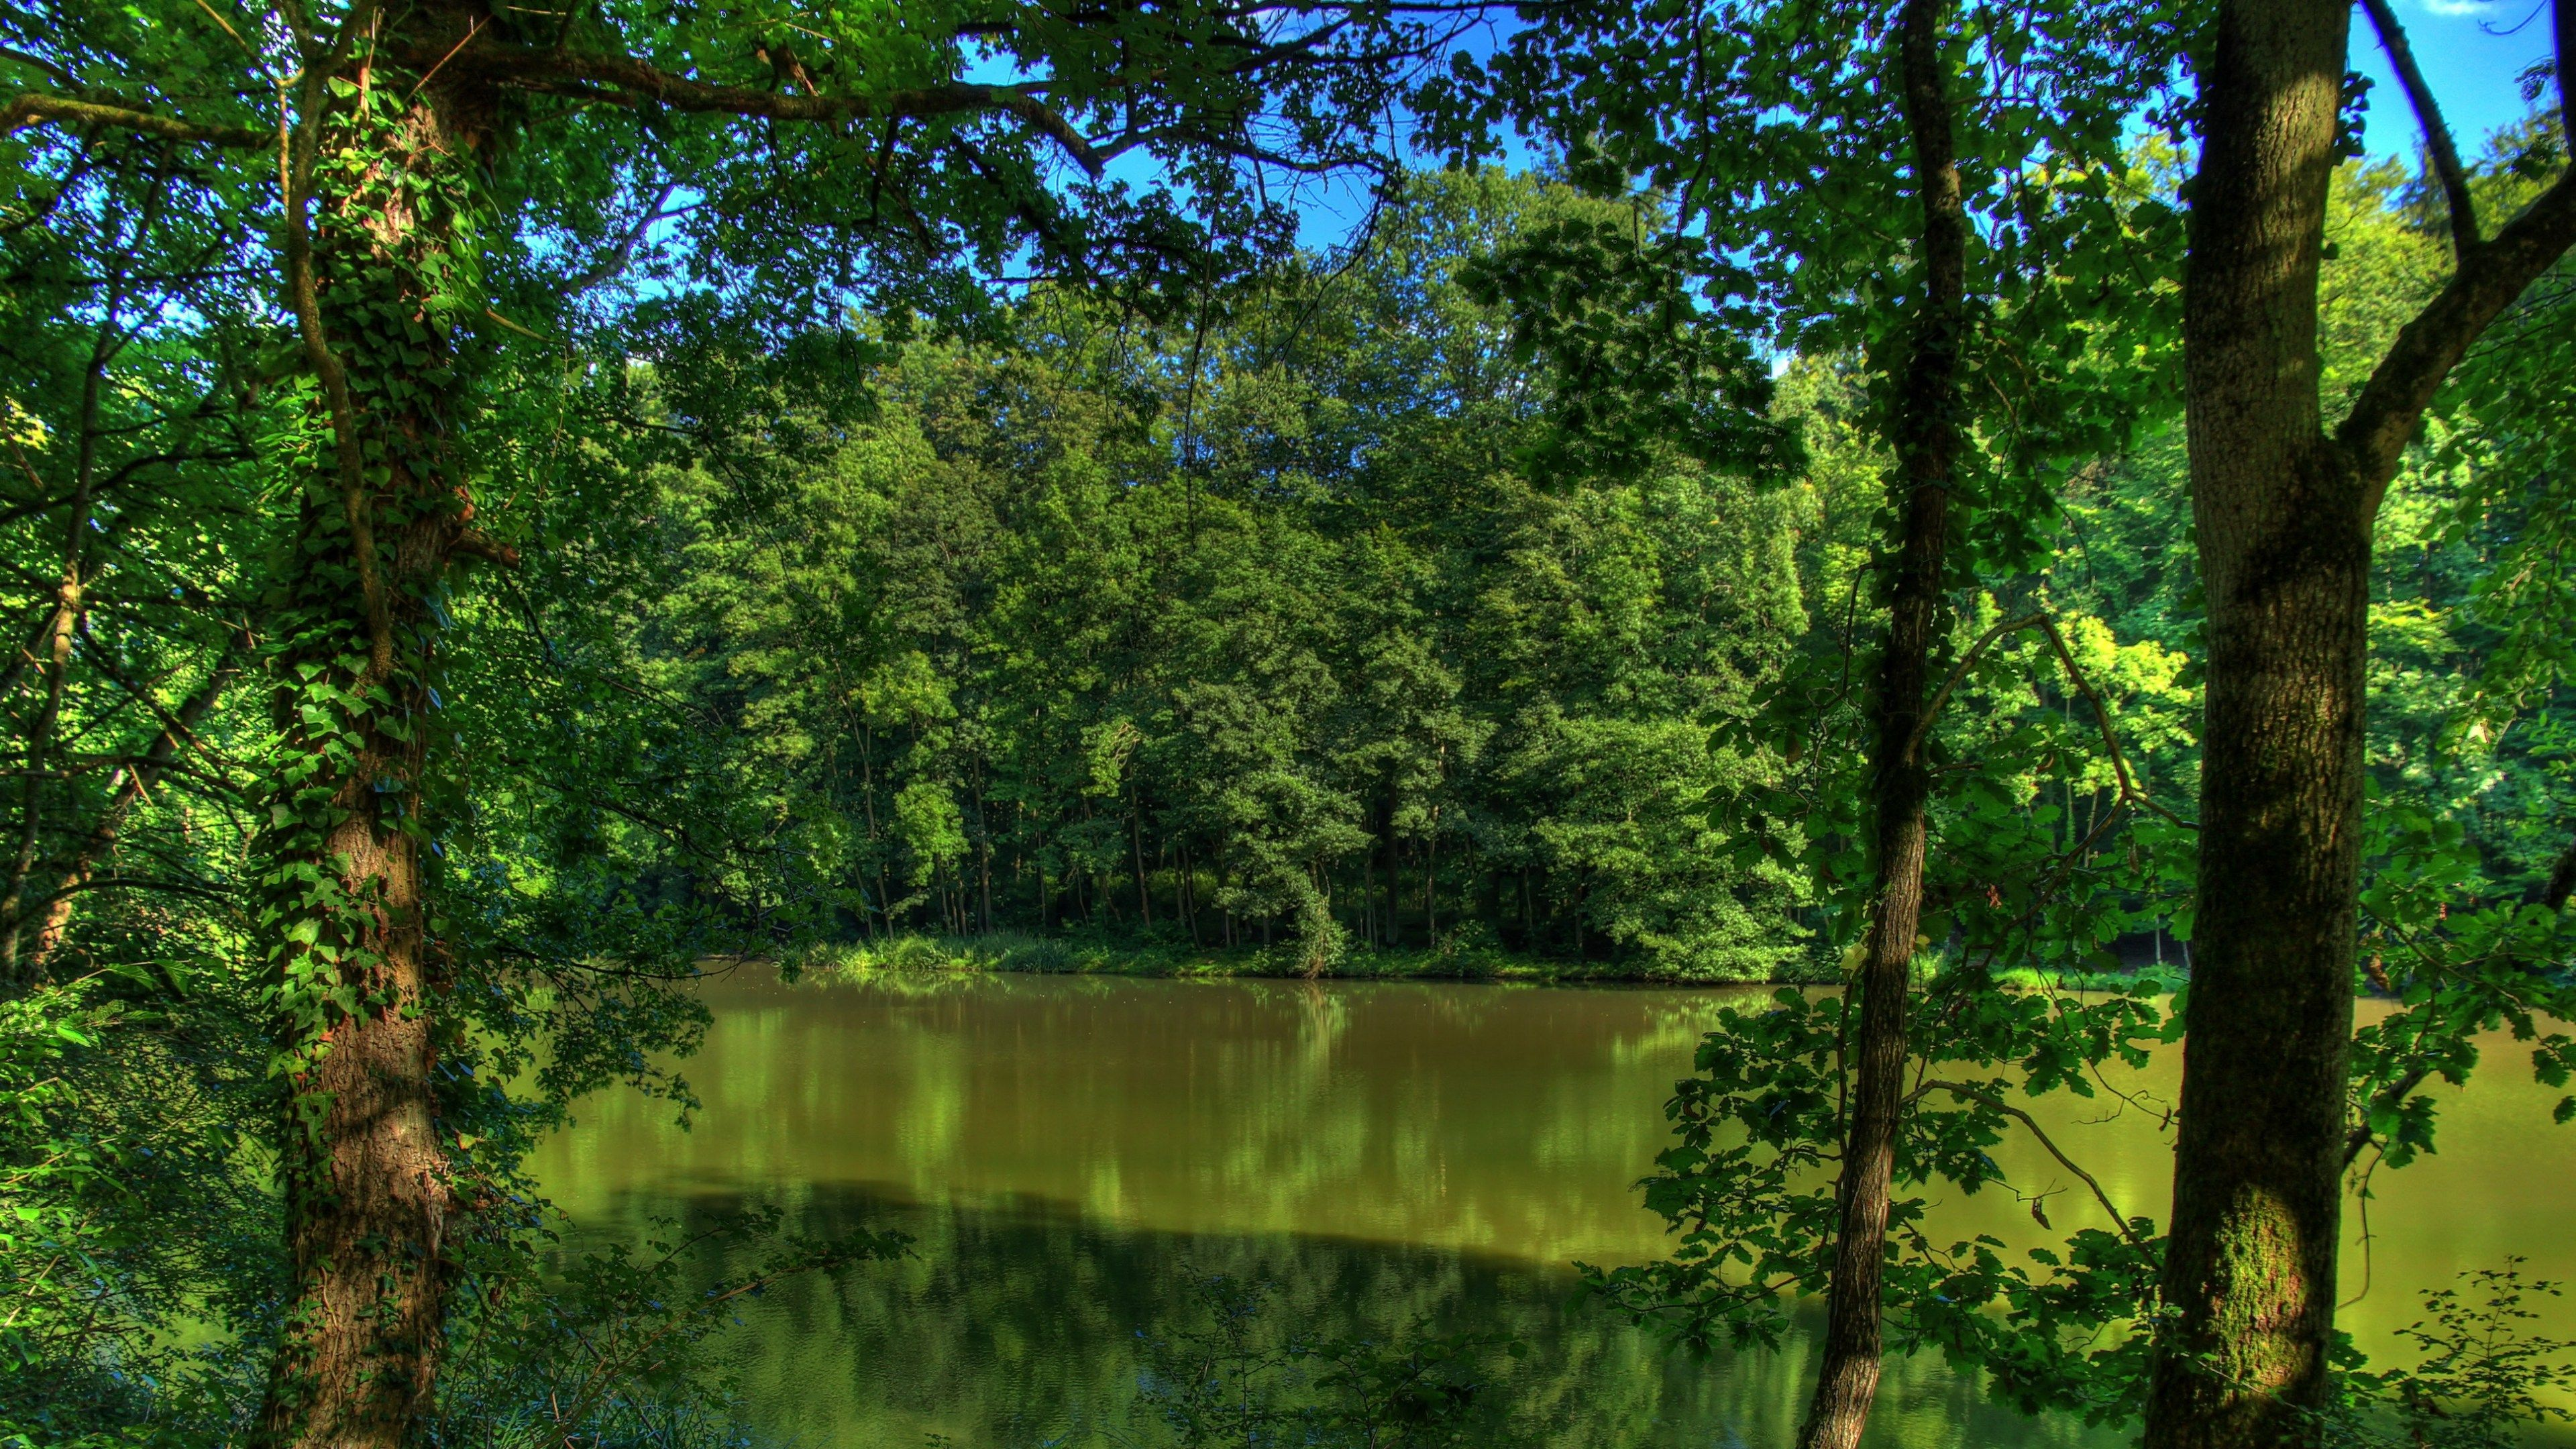 High Definition 100 Percent Quality Soothing Green Paintings 3840x2160